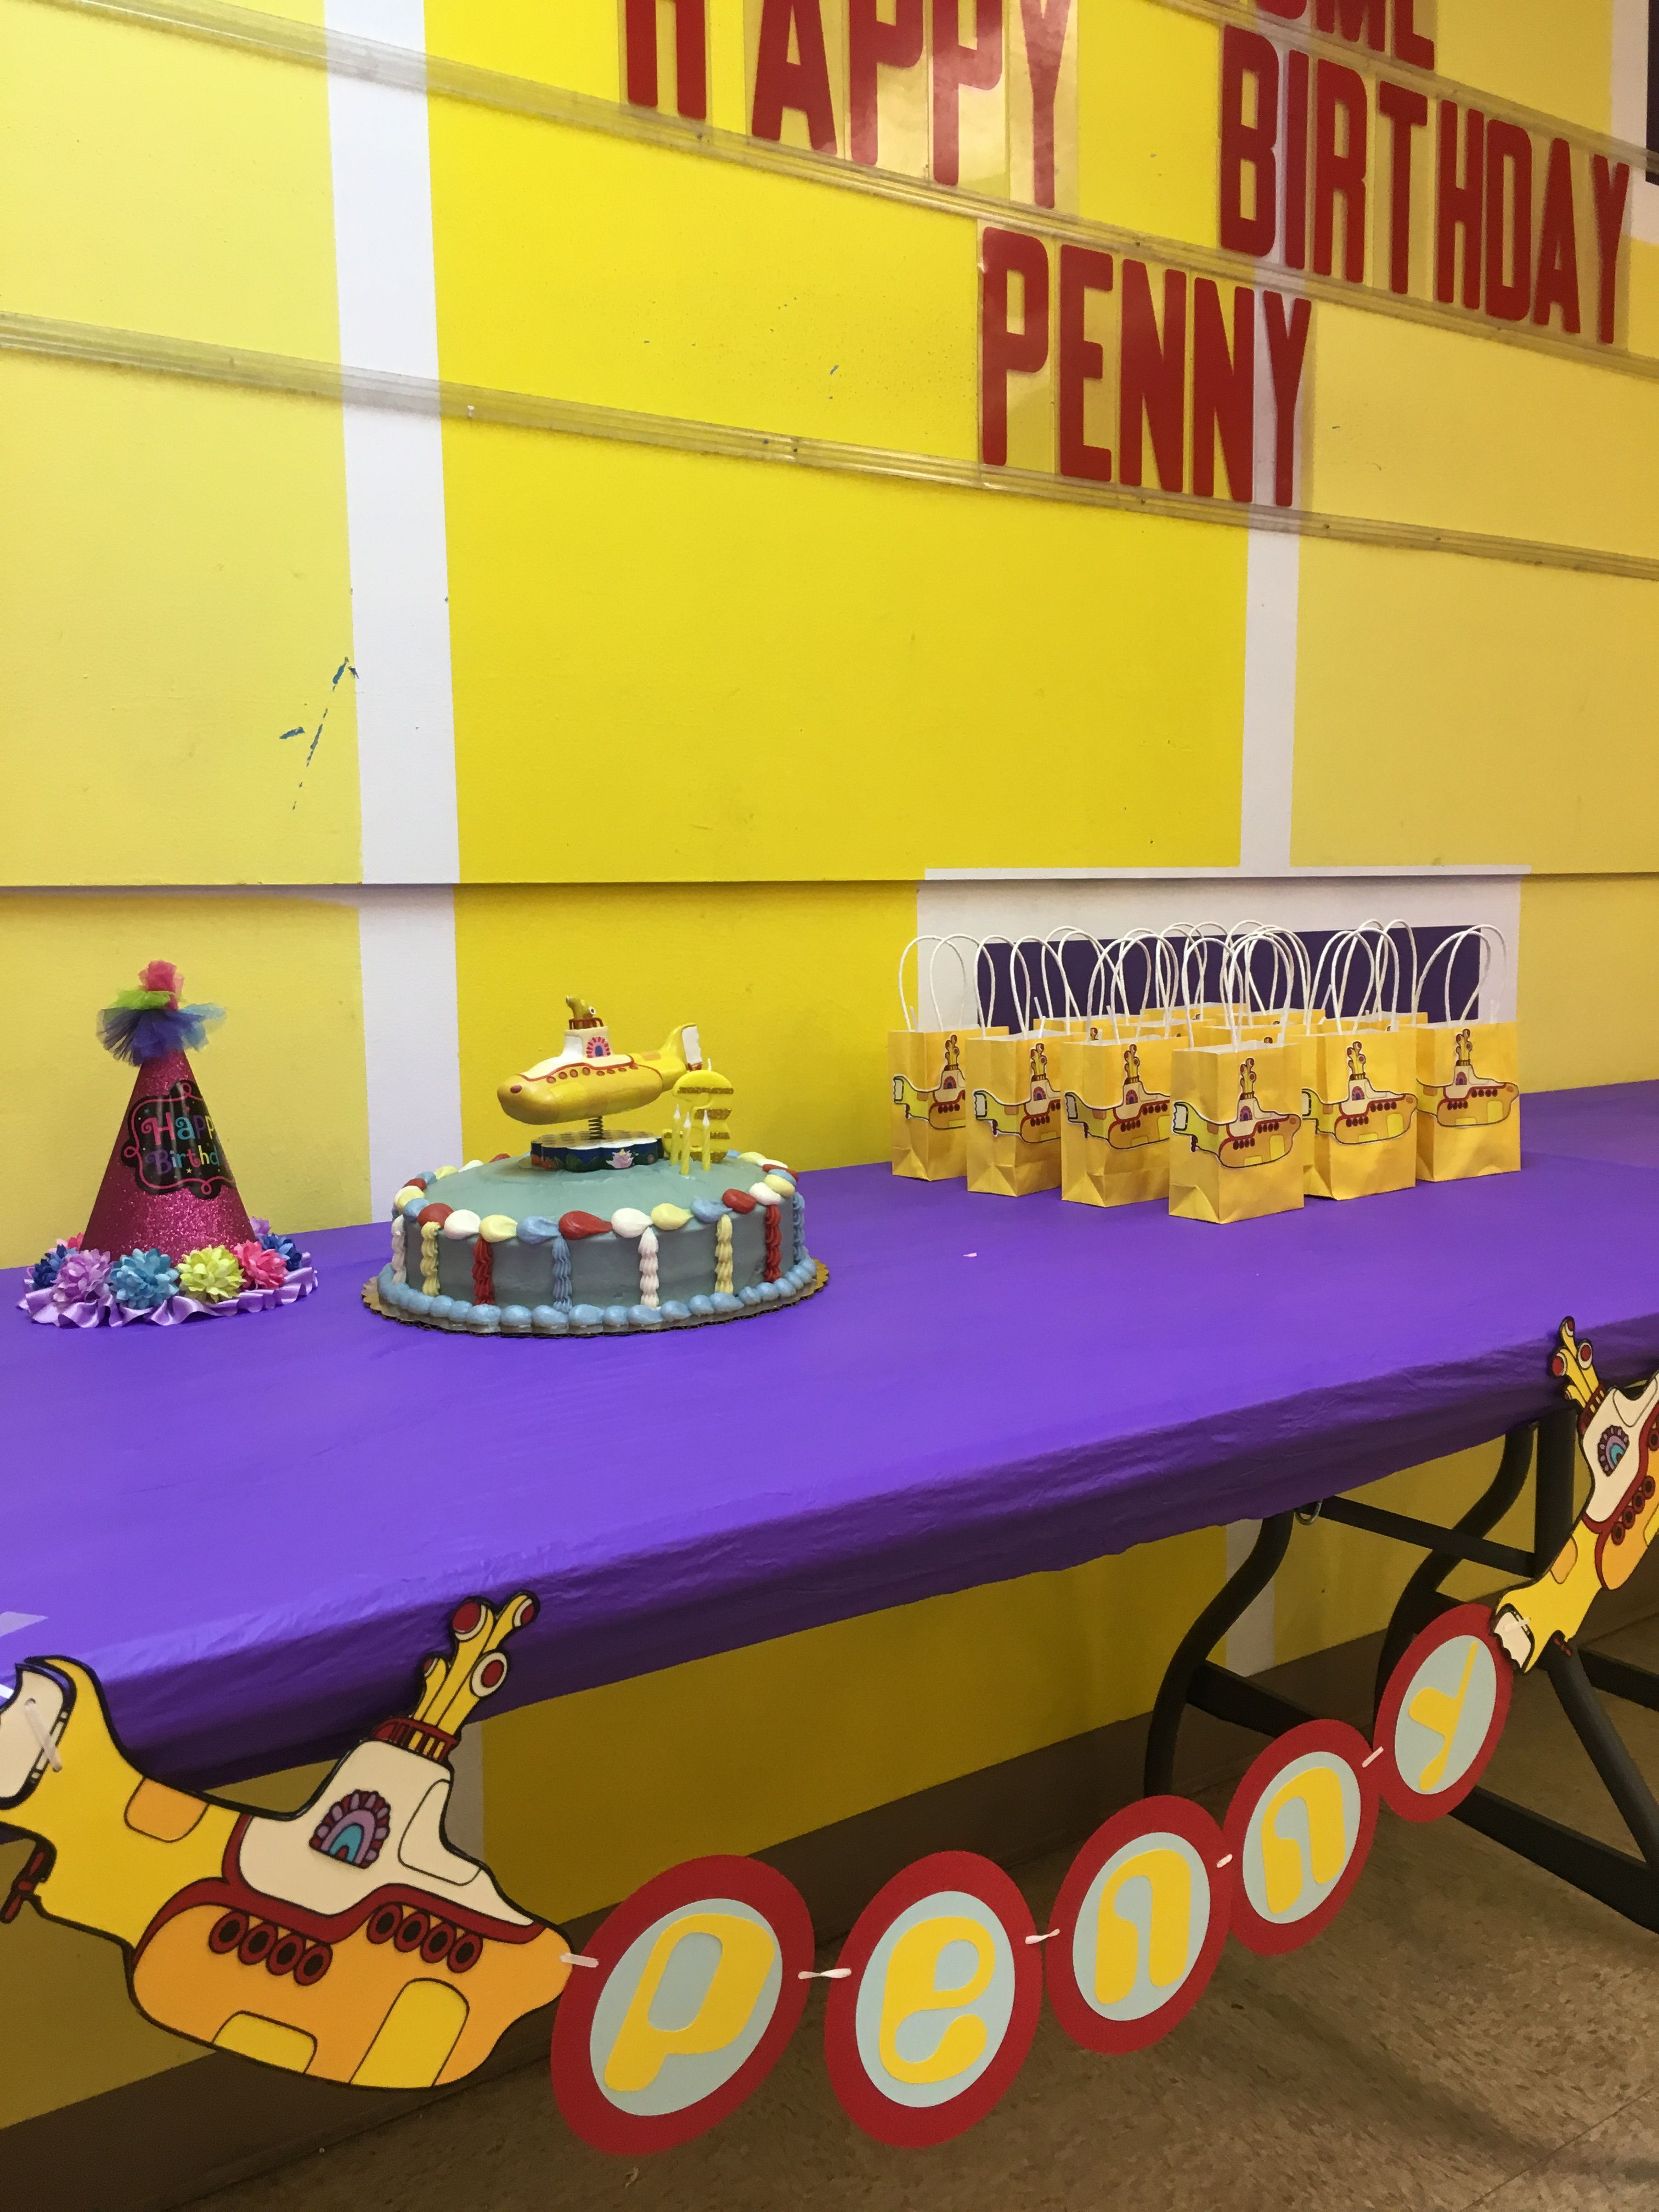 Yellow Submarine Birthday Party Decorations Penny Lives In A